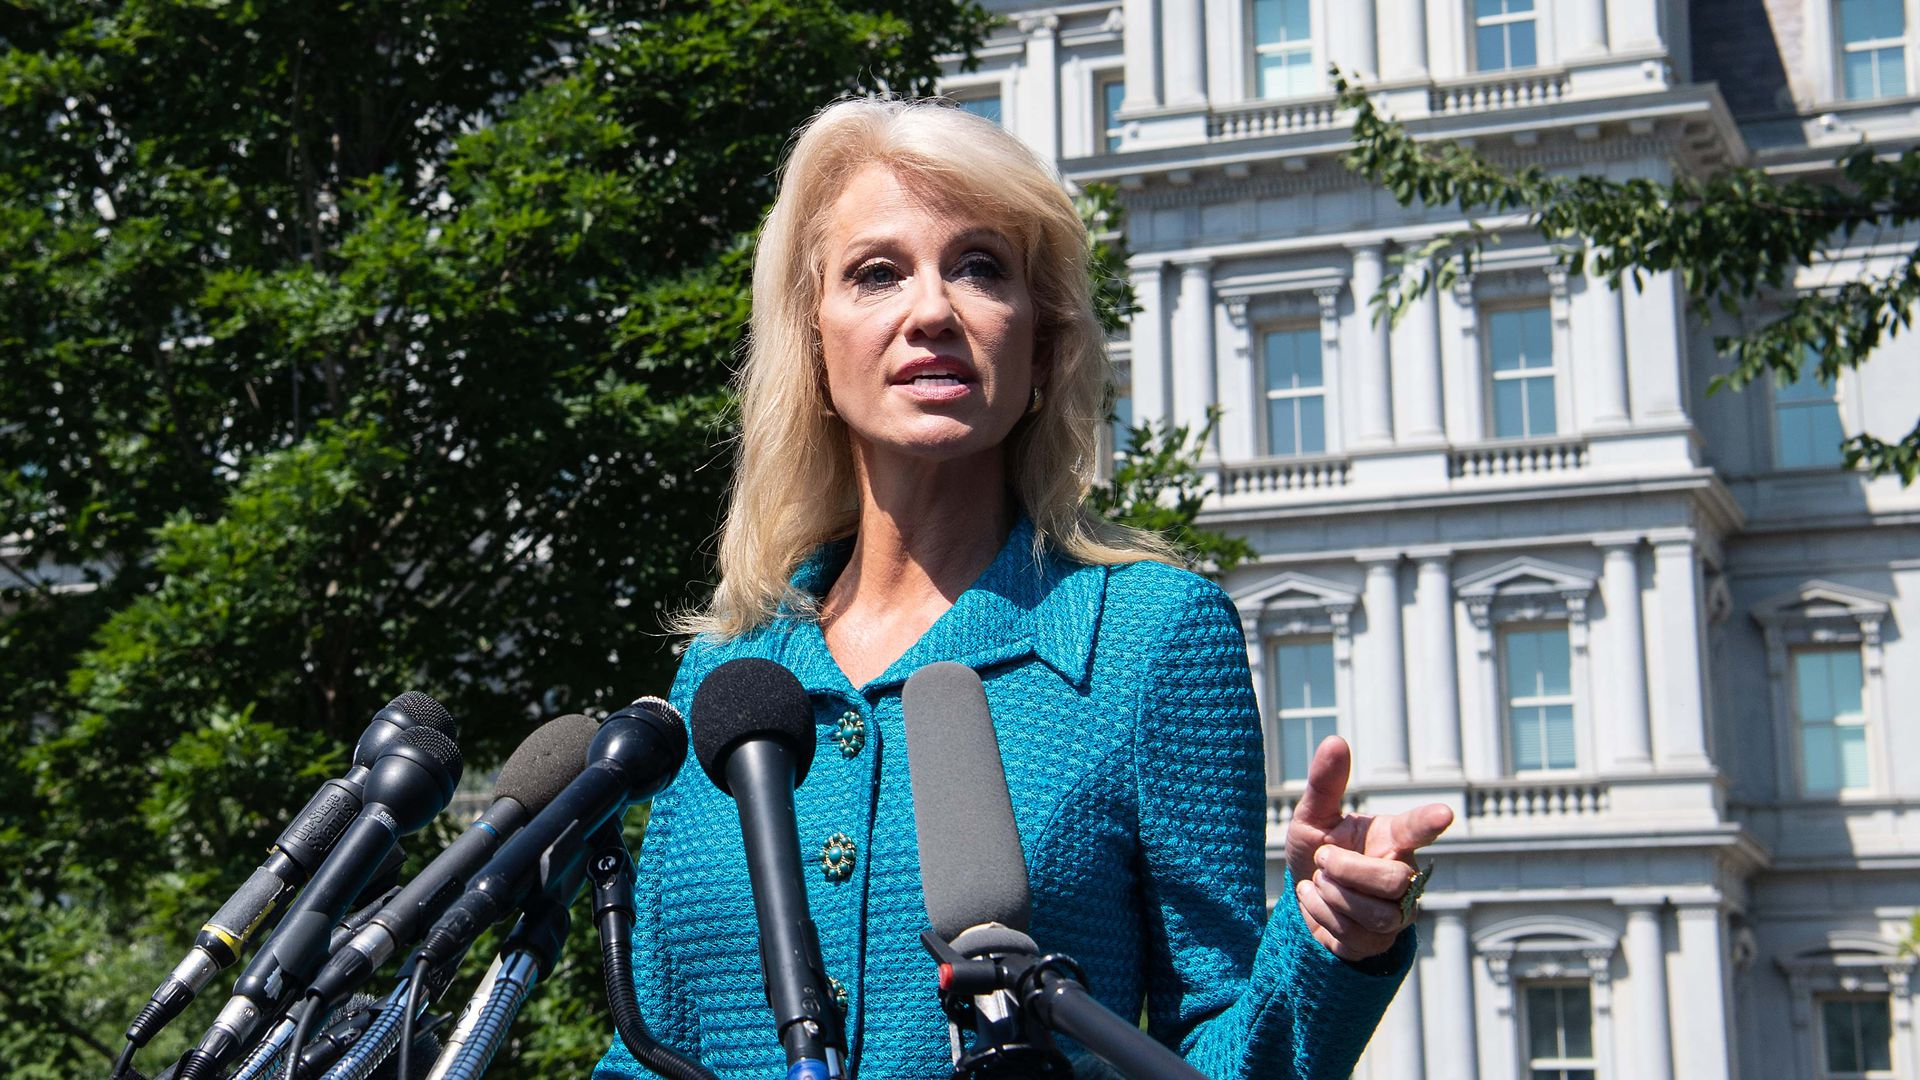 White House counselor Kellyanne Conway speaks to the press at the White House in Washington, DC